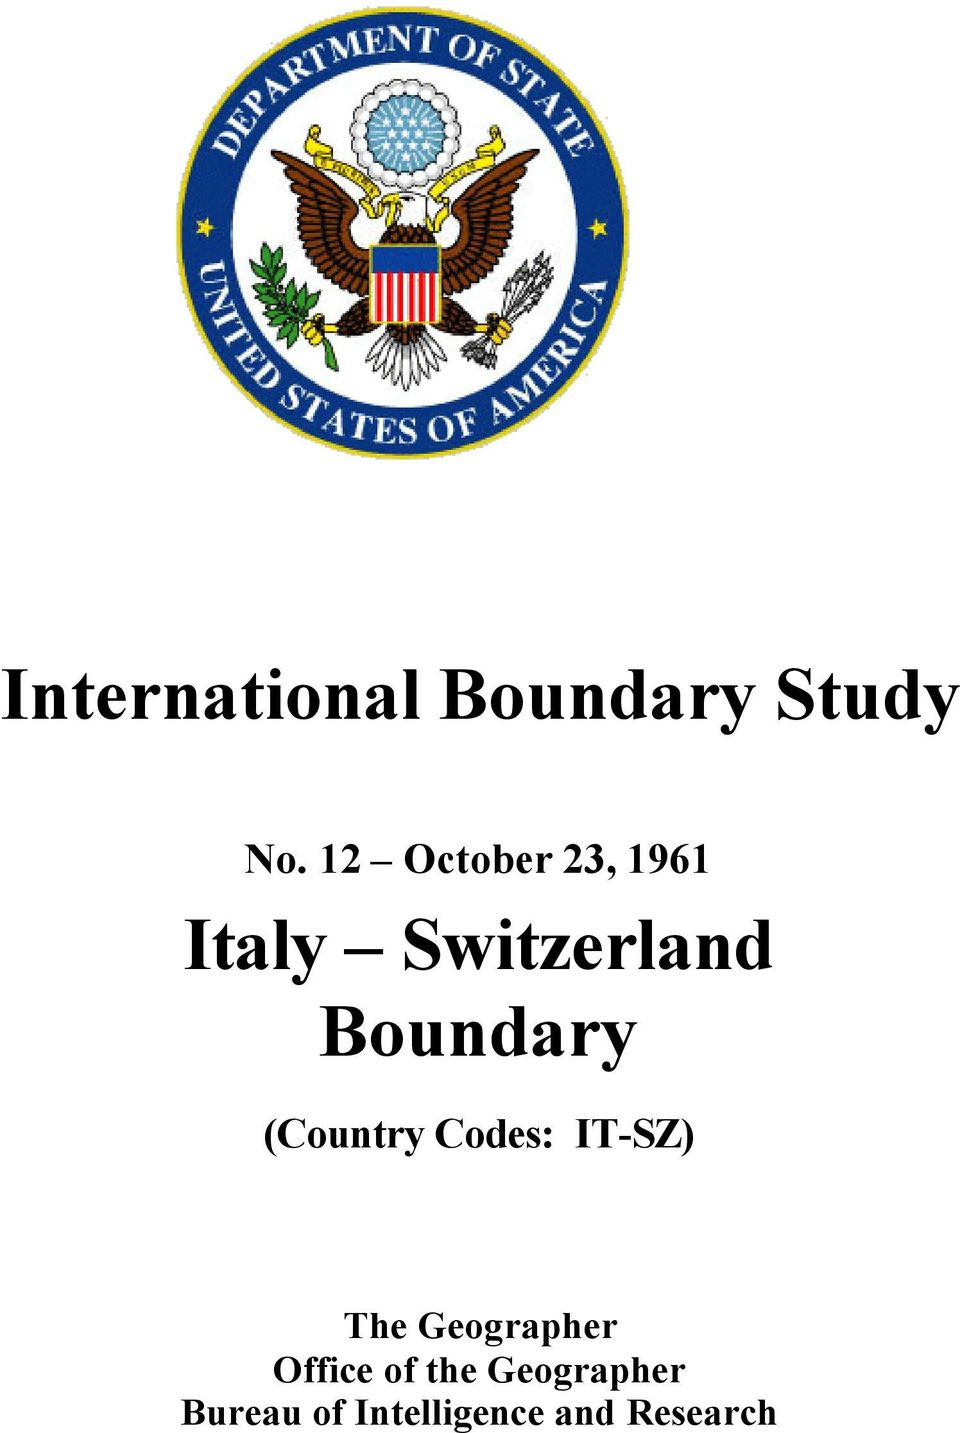 Boundary (Country Codes: IT-SZ) The